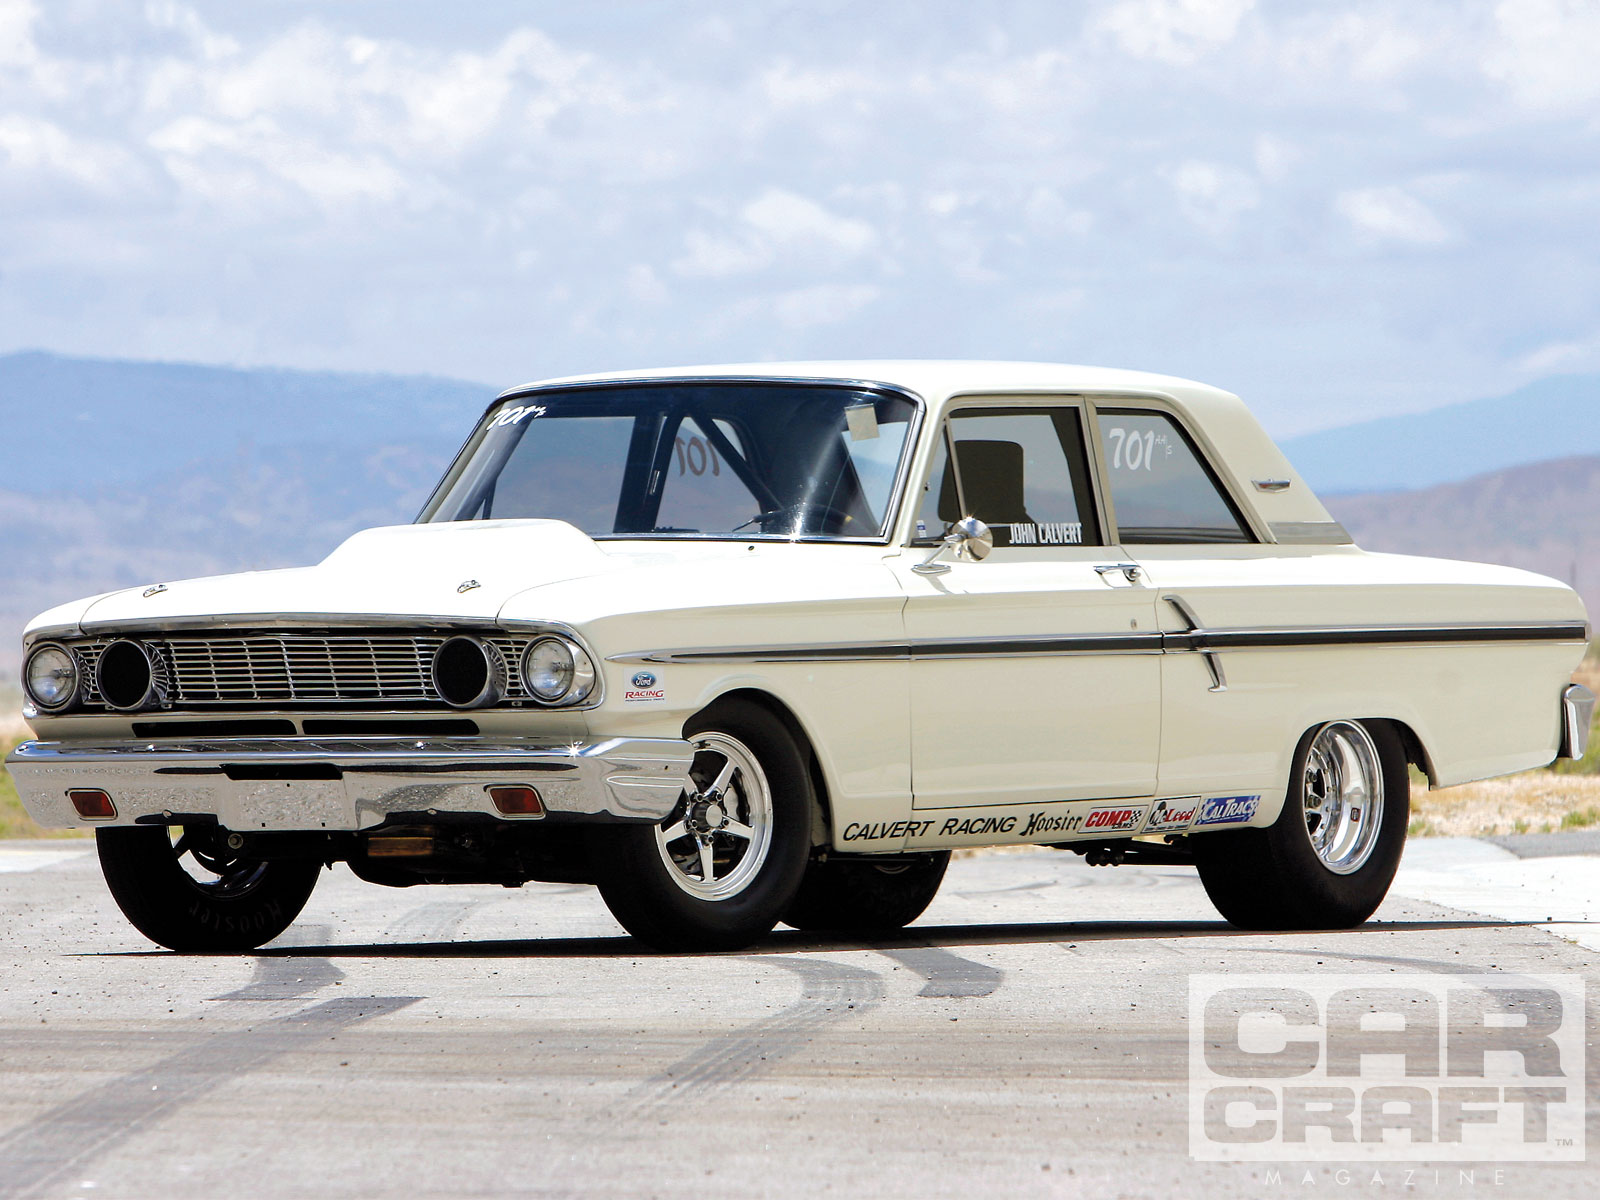 Ford Fairlane Thunderbolt Coupe 1964